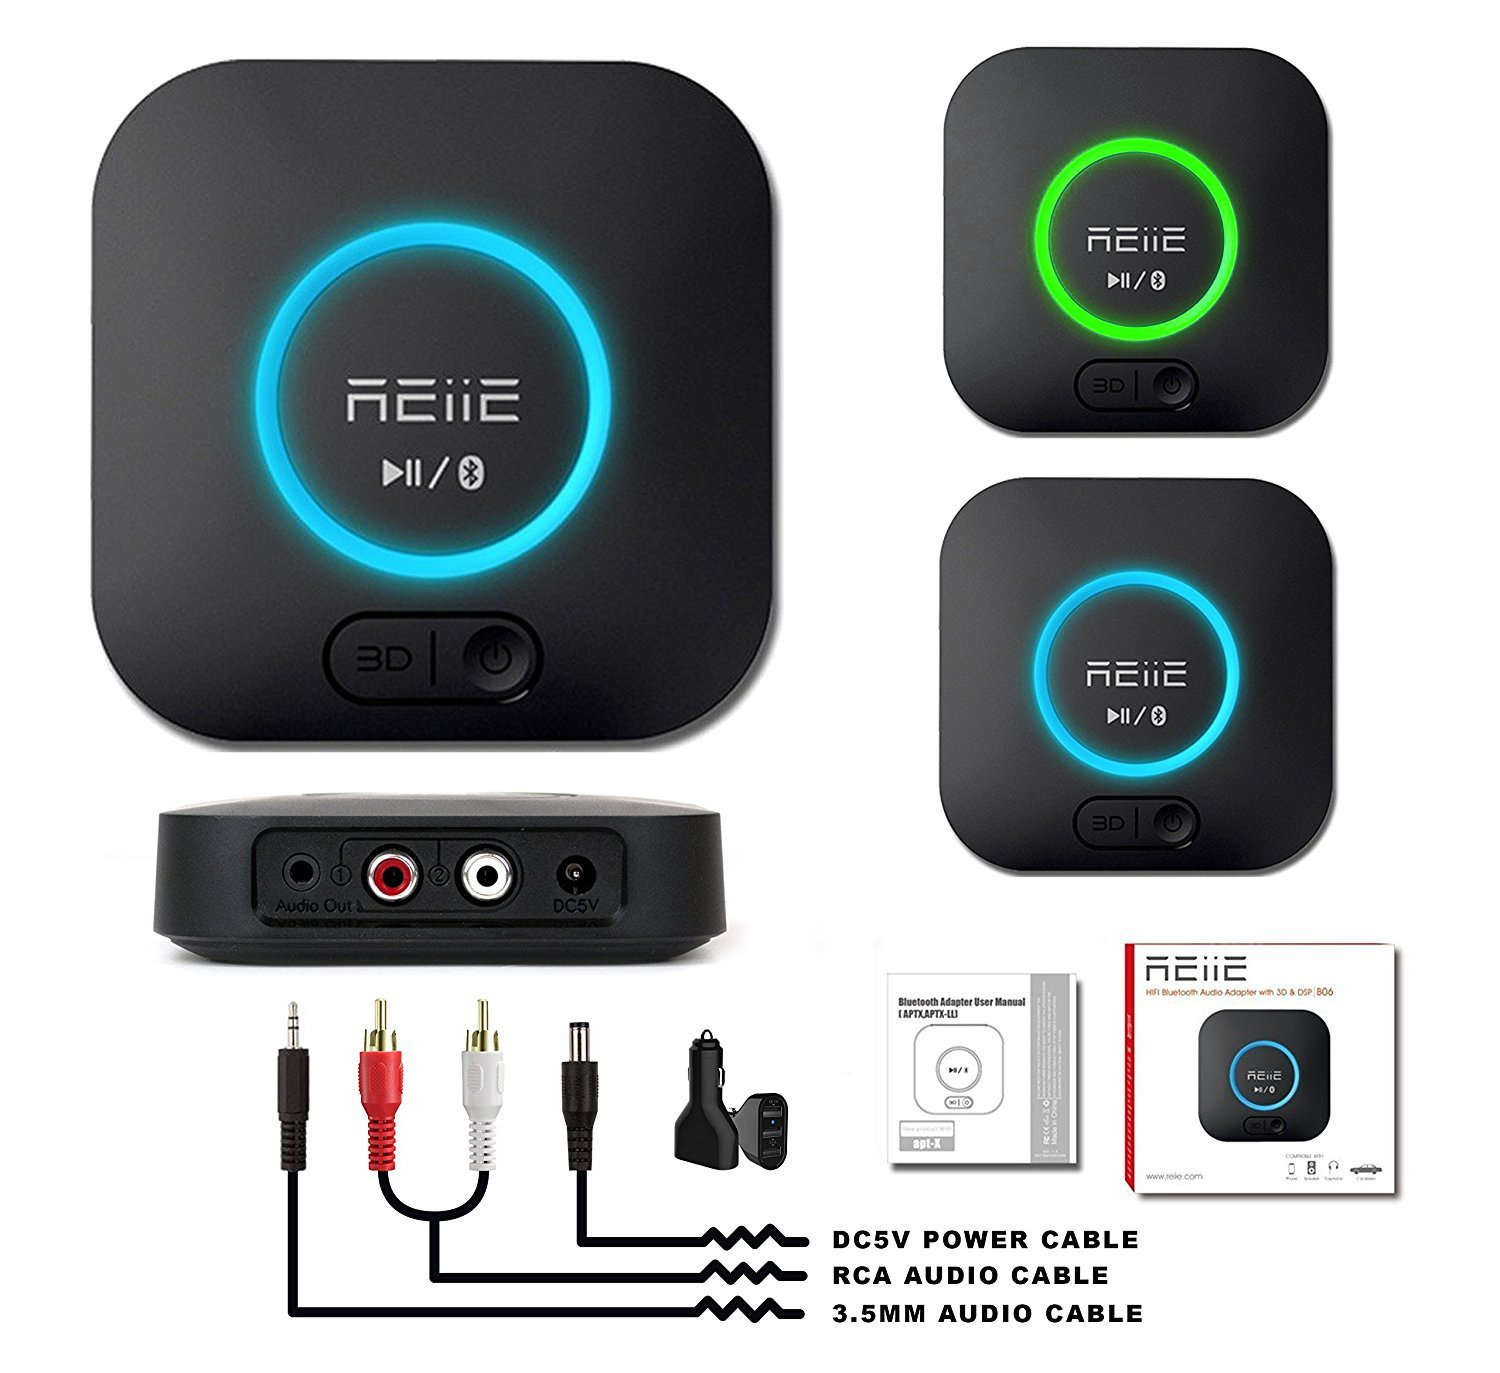 REiiE Audio Bluetooth Adapter Receiver with 3D Surround AptX Low Latency, V4.2 Wireless Audio Adapter for Home and Car Music Stereo Streaming(Pair 2 At Once) by REIIE (Image #3)